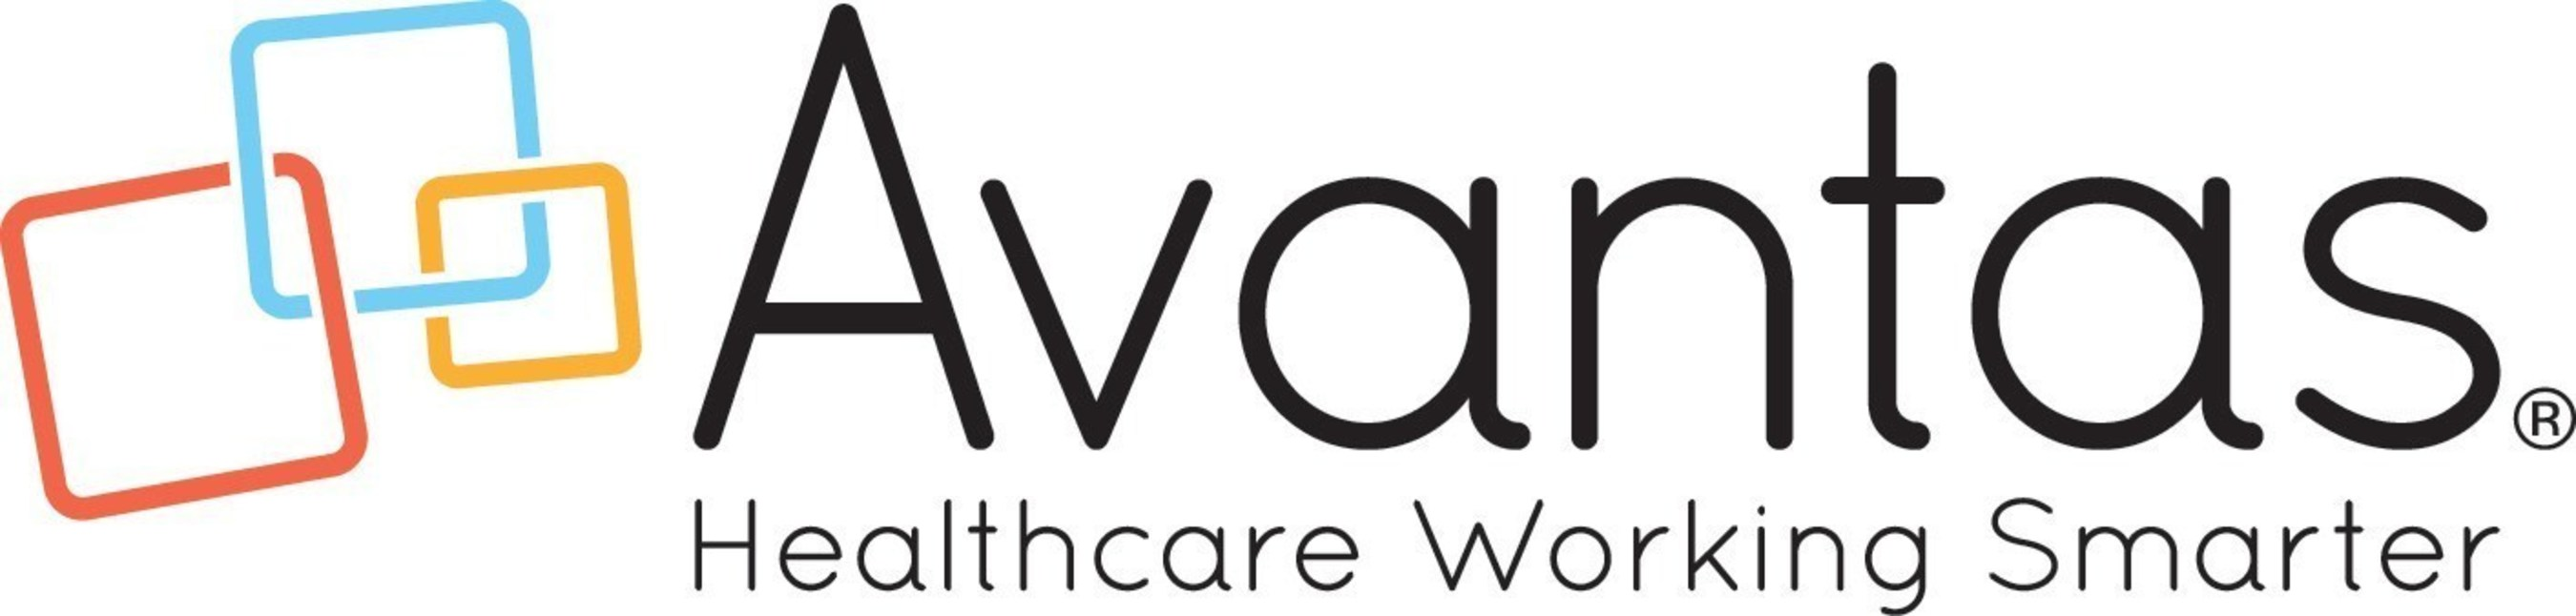 Avantas is a leading provider of labor management technology, services, and strategies for the healthcare industry.